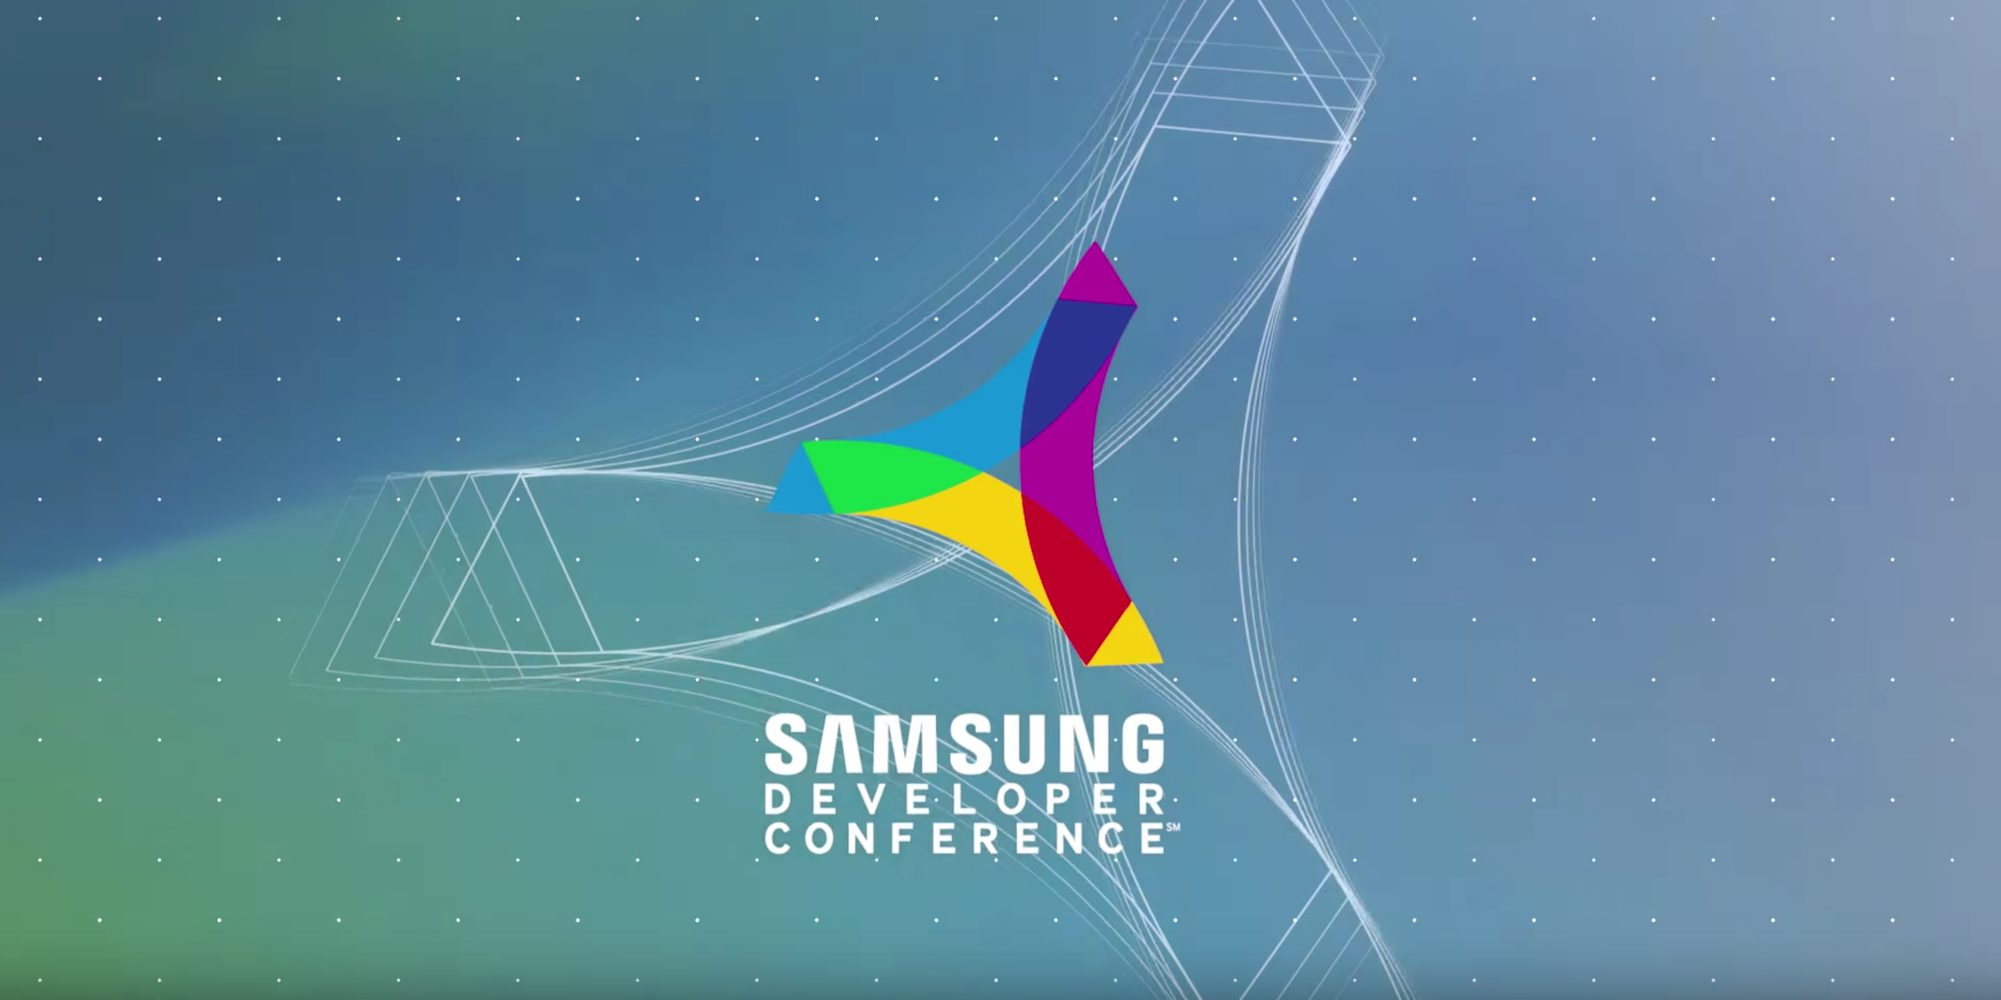 Samsung-Dev-Conference-2016